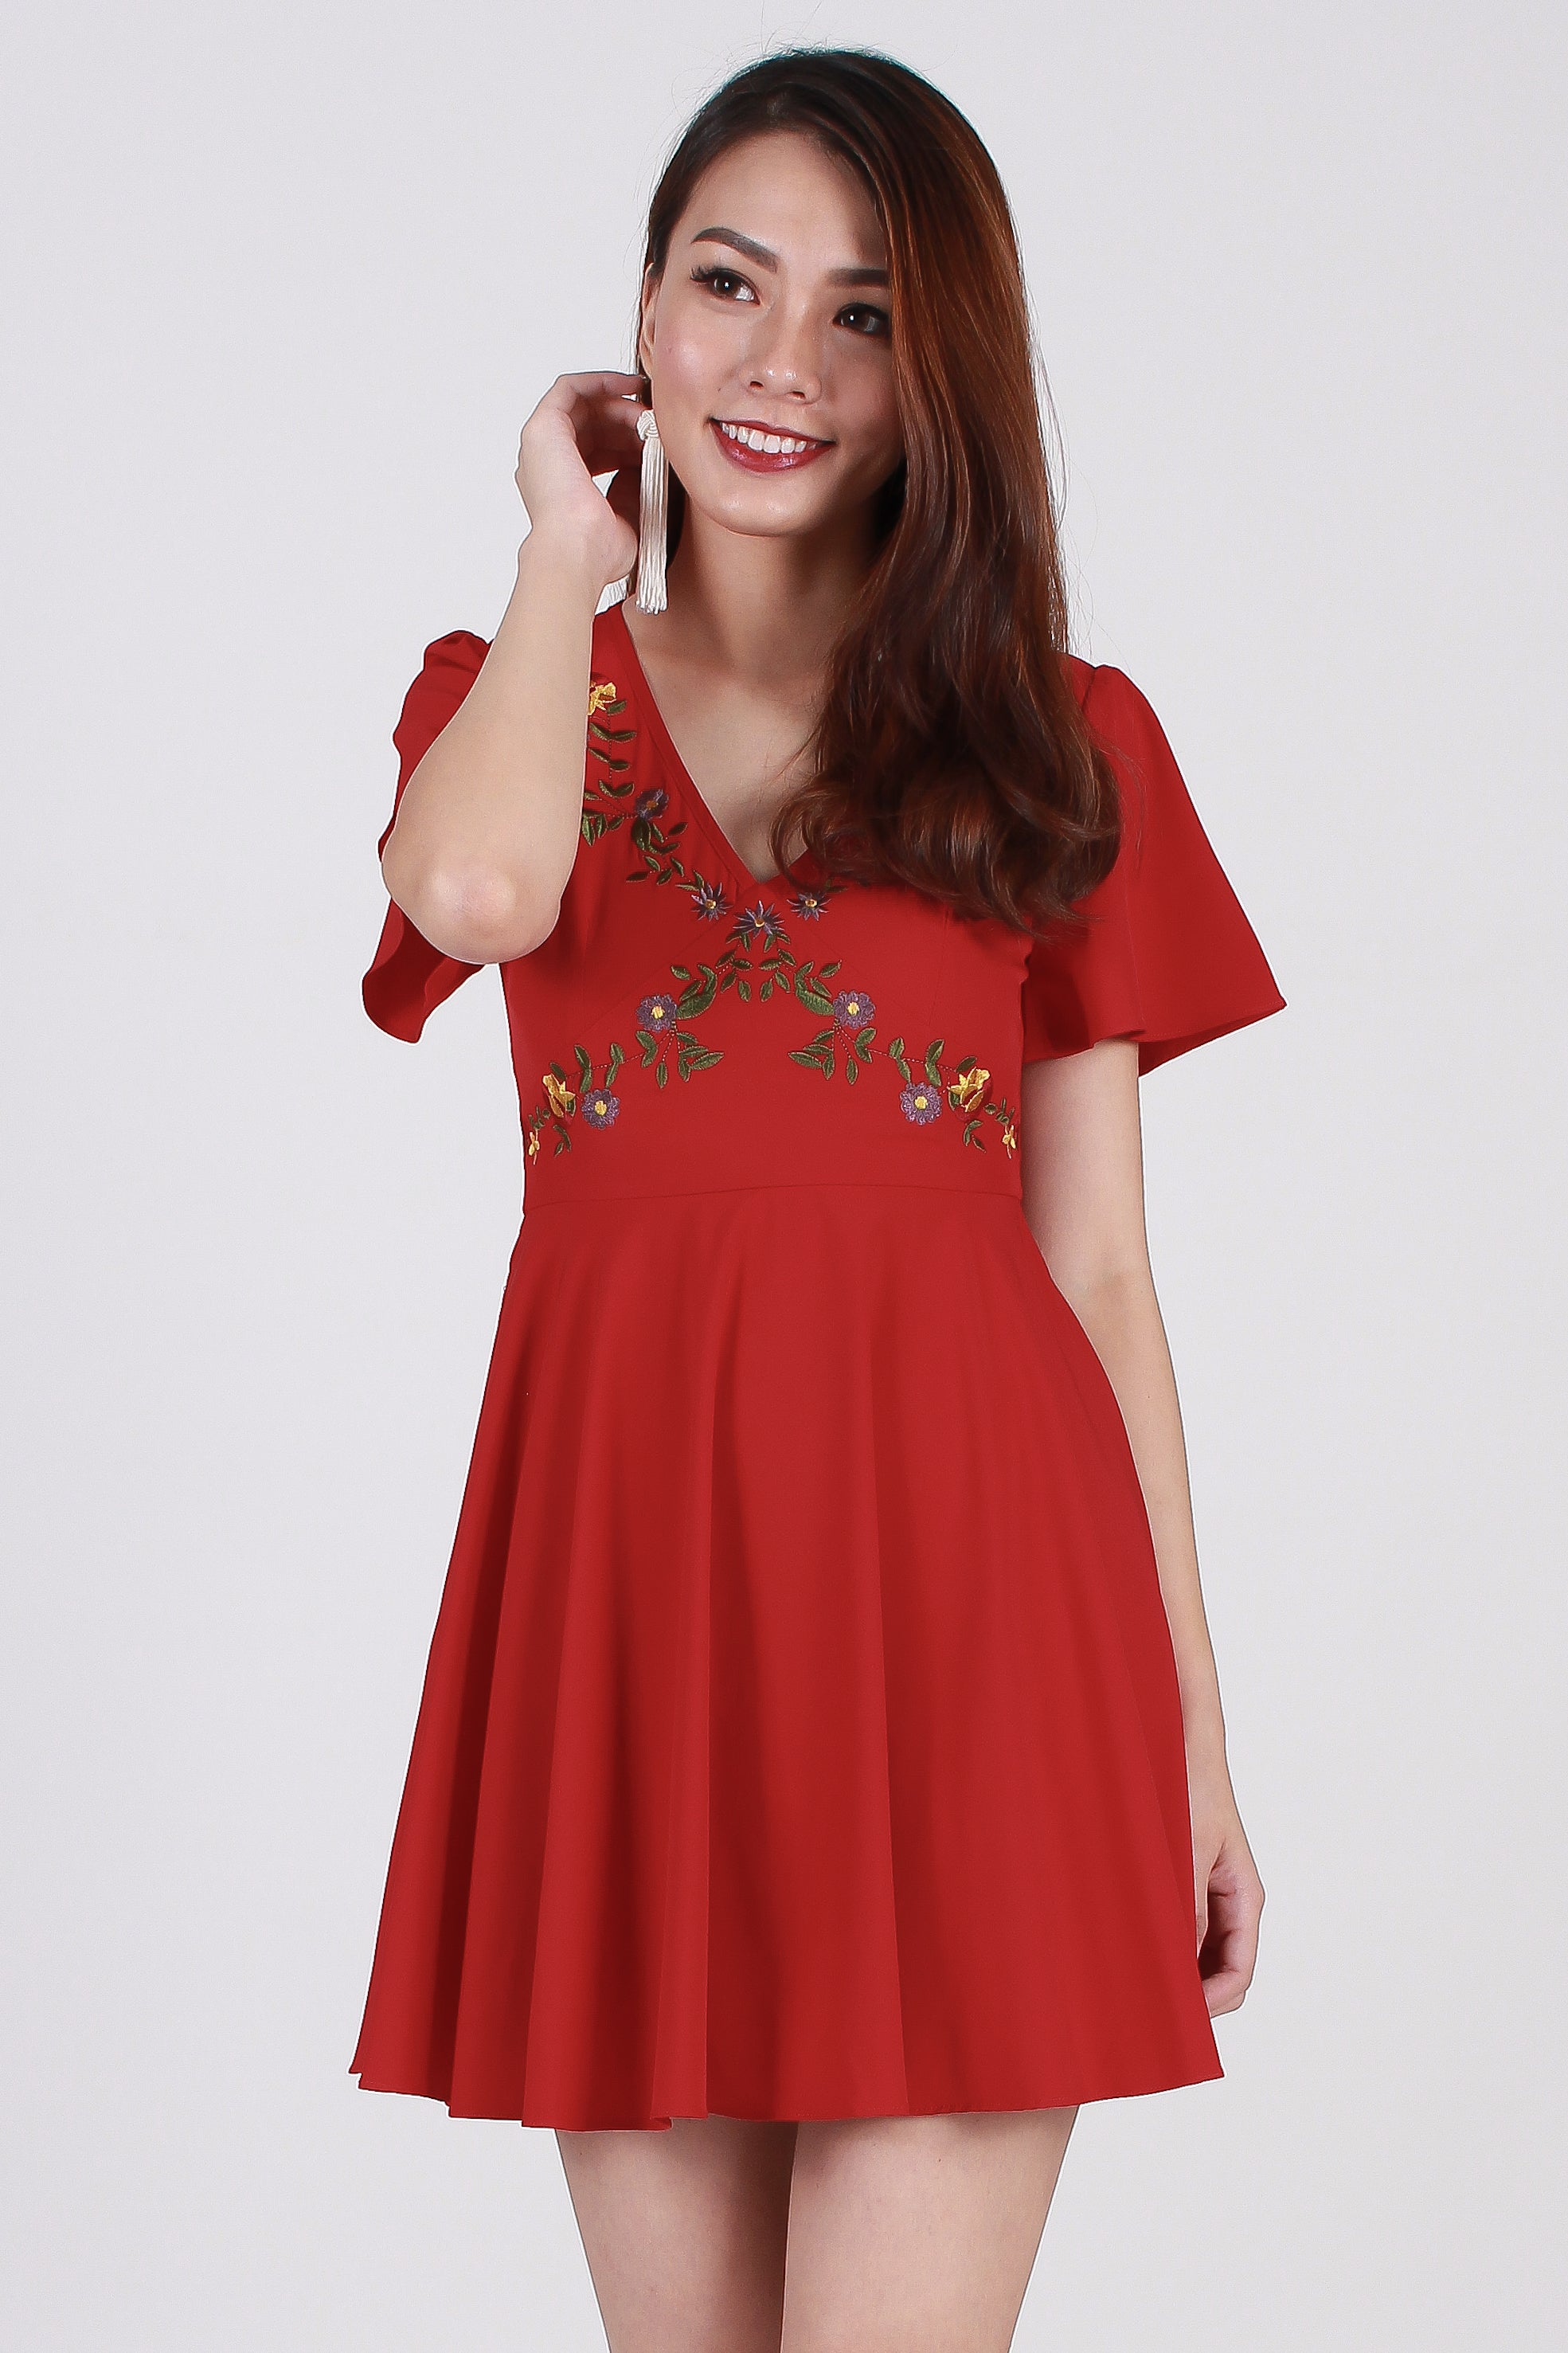 d4dd74cf39 Jadore Embroidery Skater Dress In Red - The Sunday Avenue